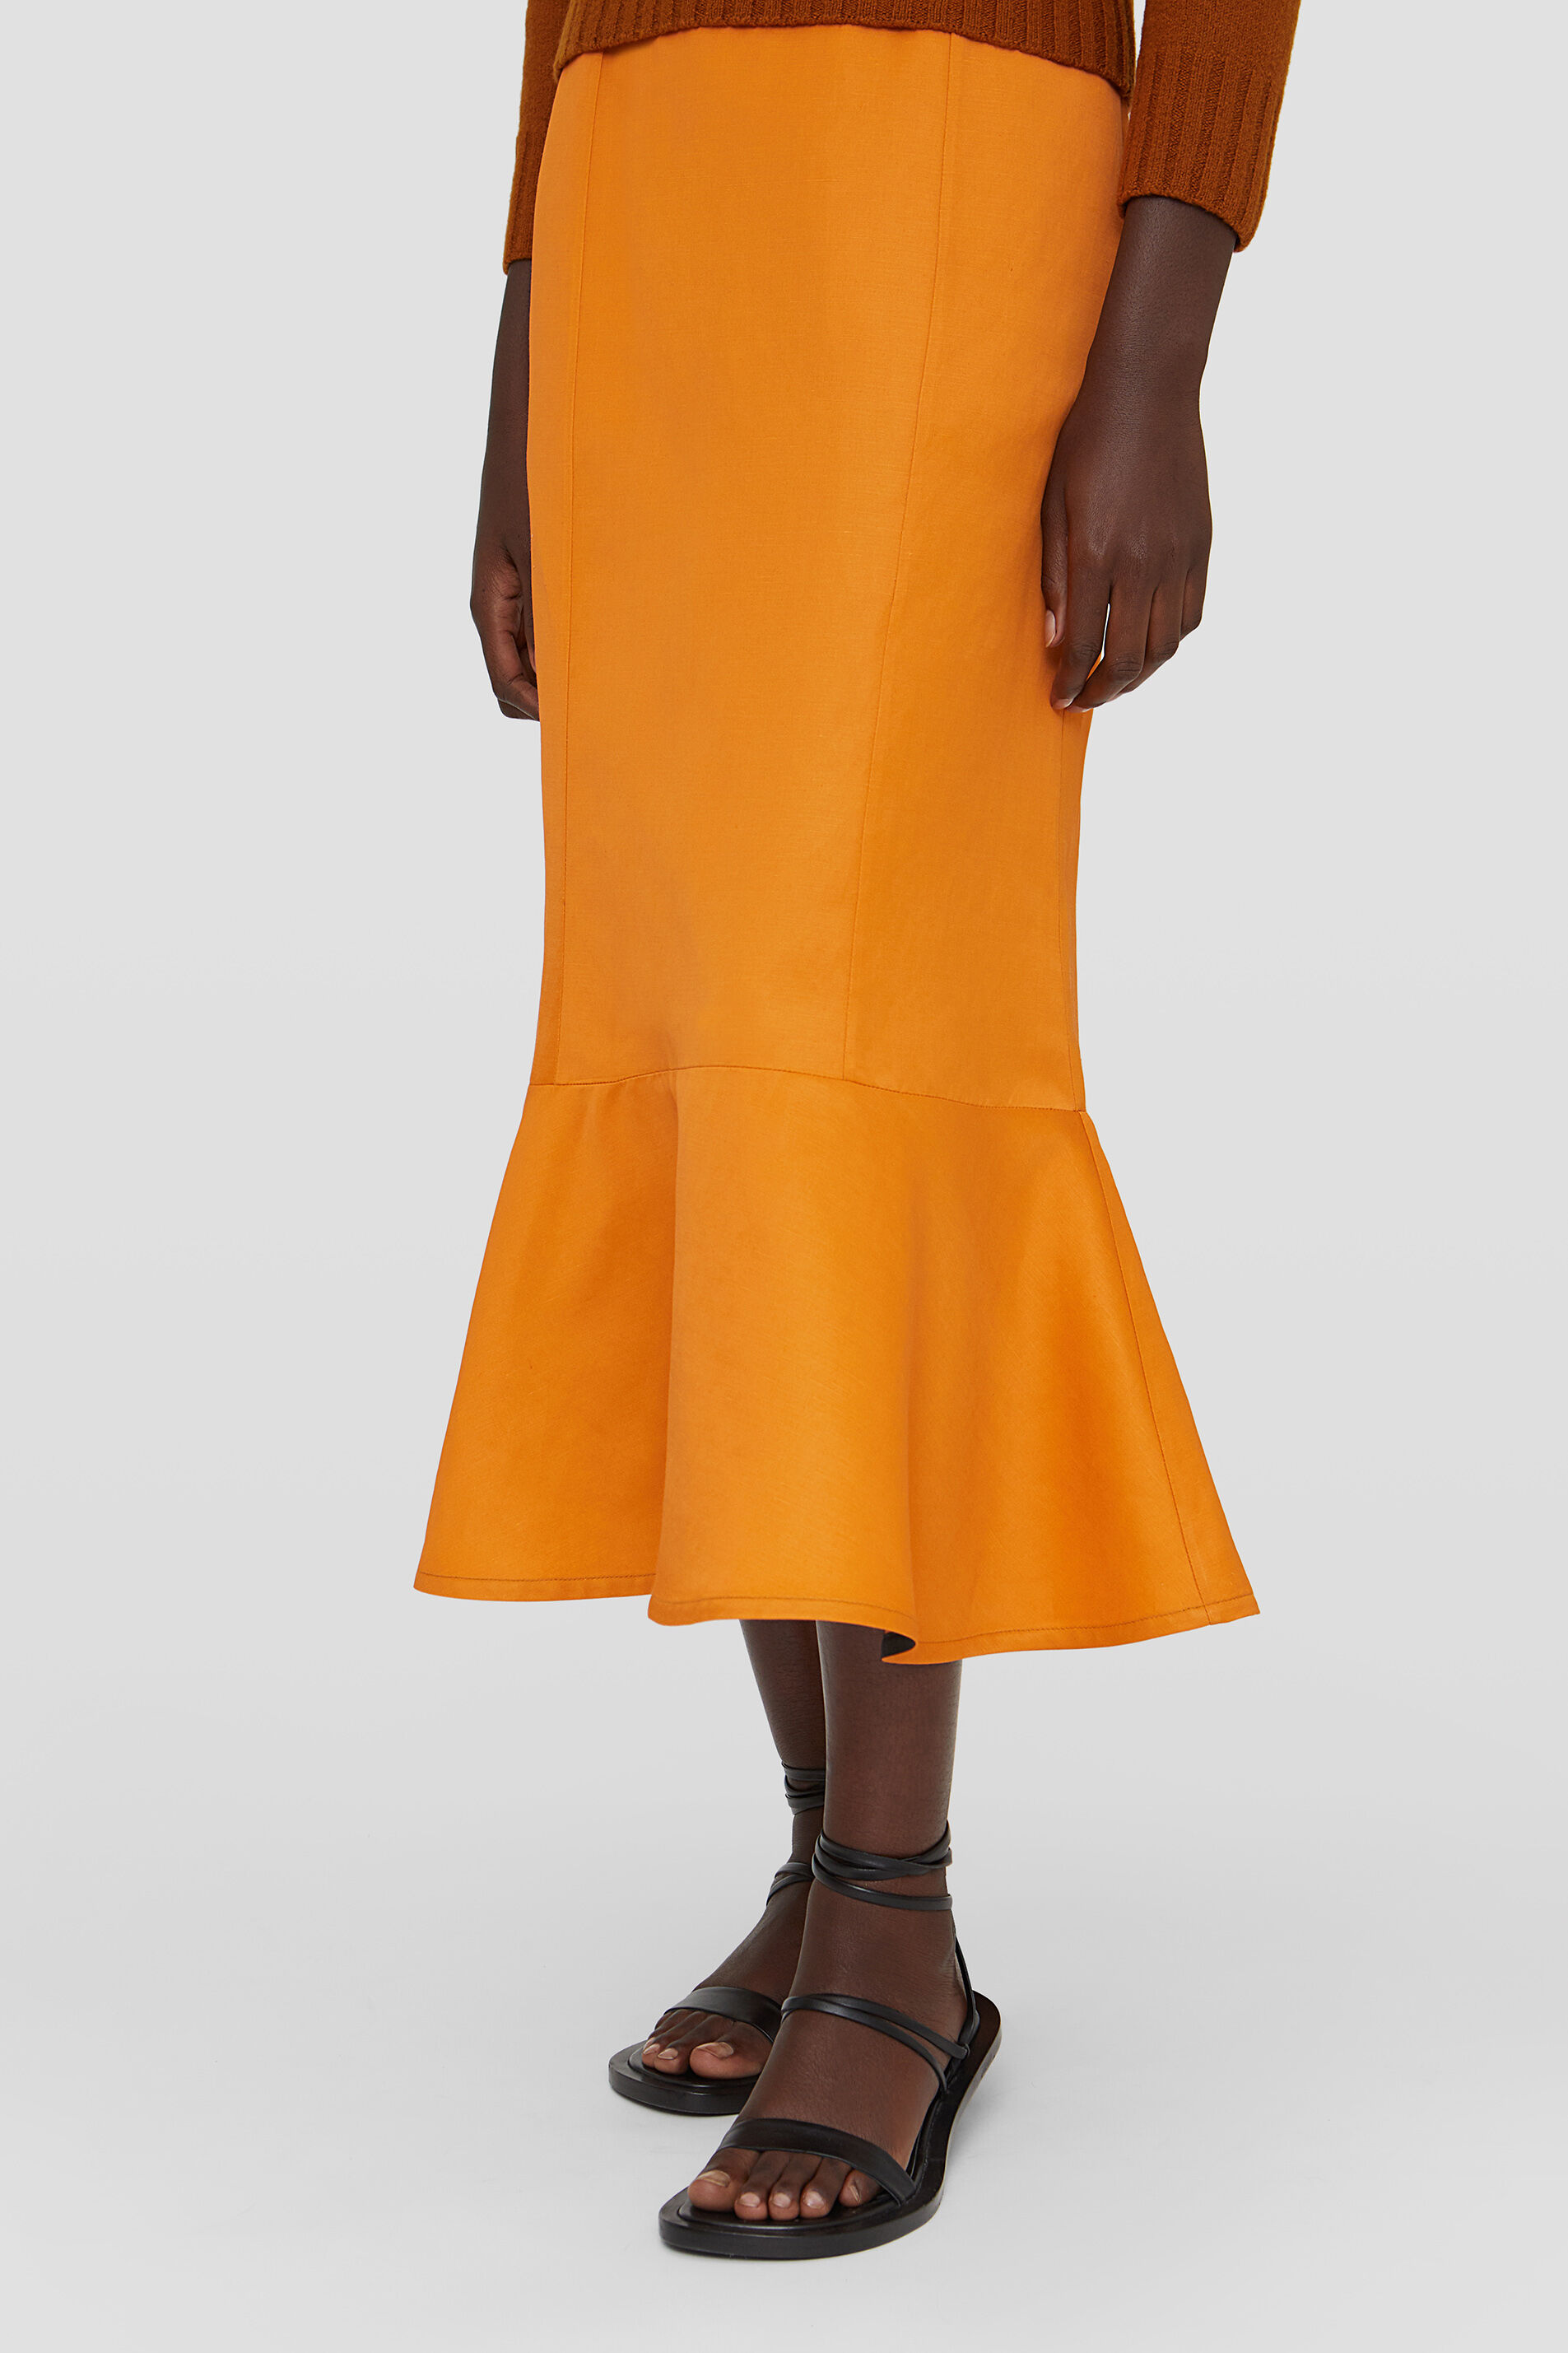 Skirt, pastel orange, large